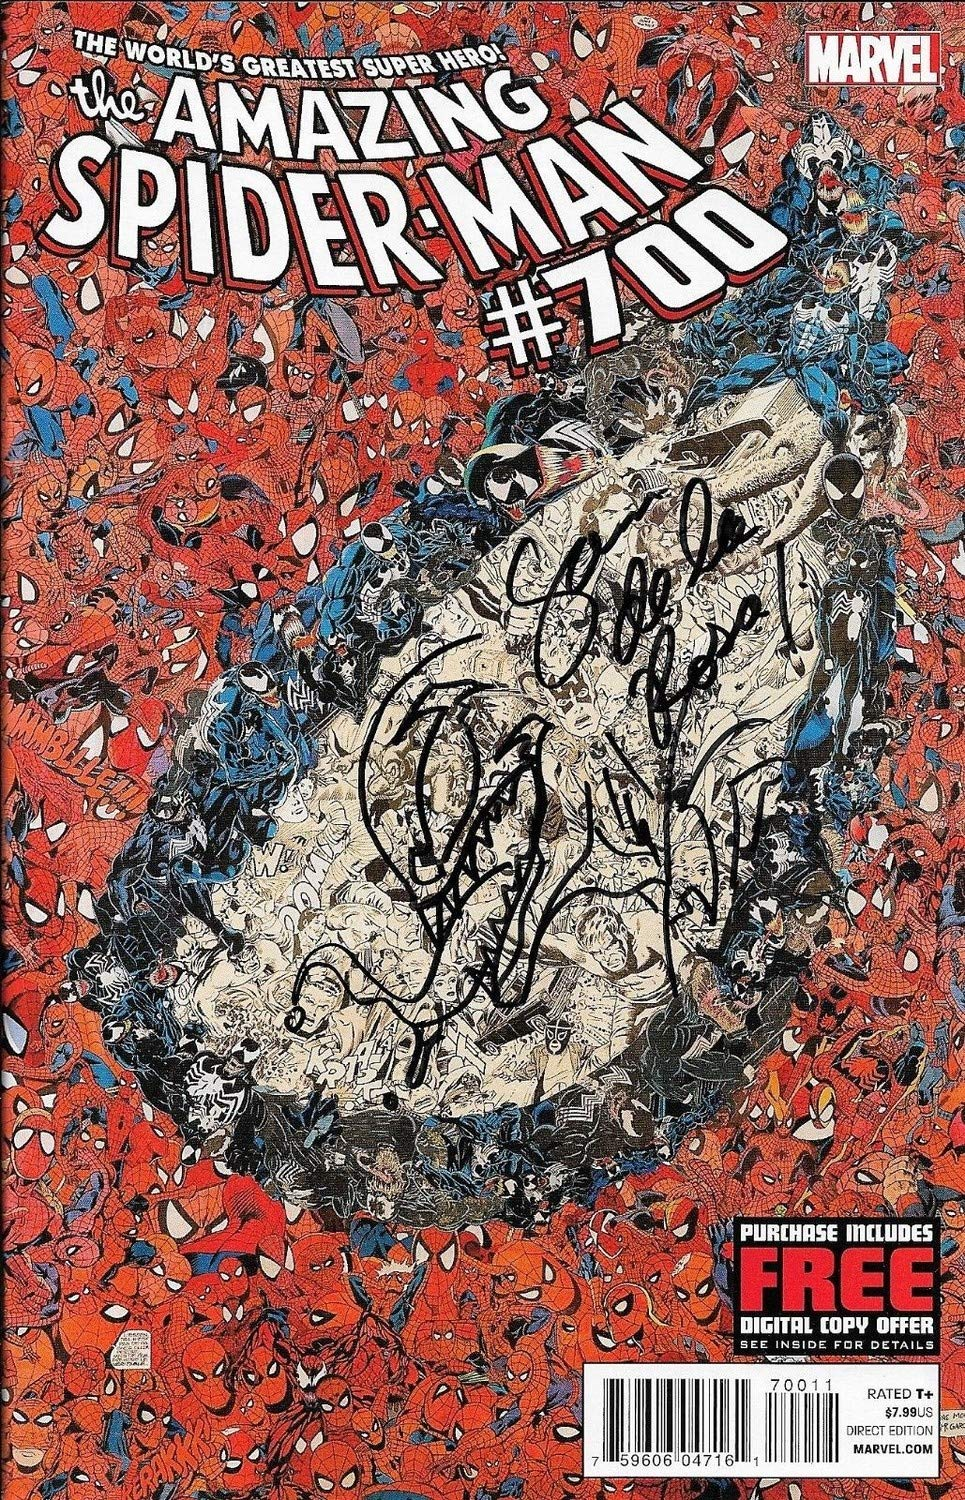 Sam De La Rosa Autographed Signed The Amazing Spider Man Autographed Signed #700 Marvel Comic Book W Sketch 1 Certified Authentic